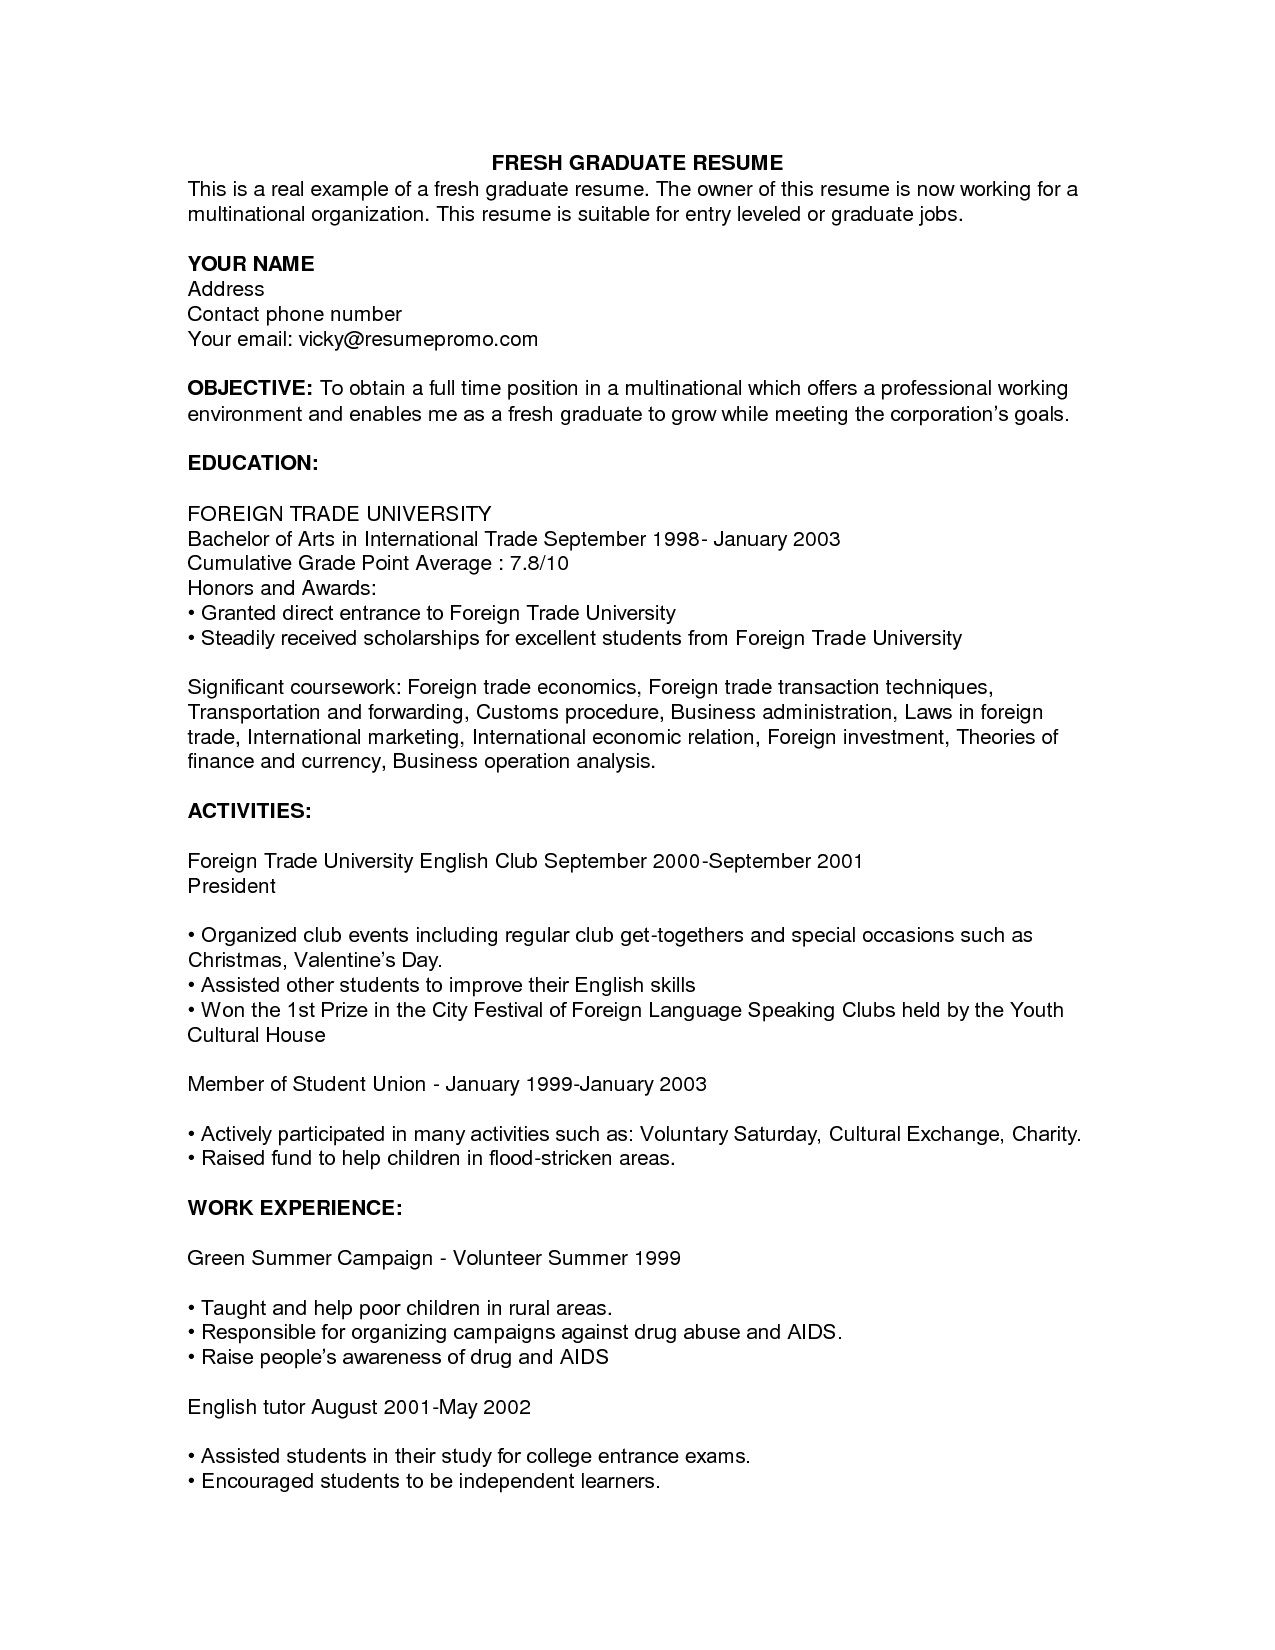 Sample Resume For College Student Example Of Resume For Fresh Graduate  Httpjobresumesample